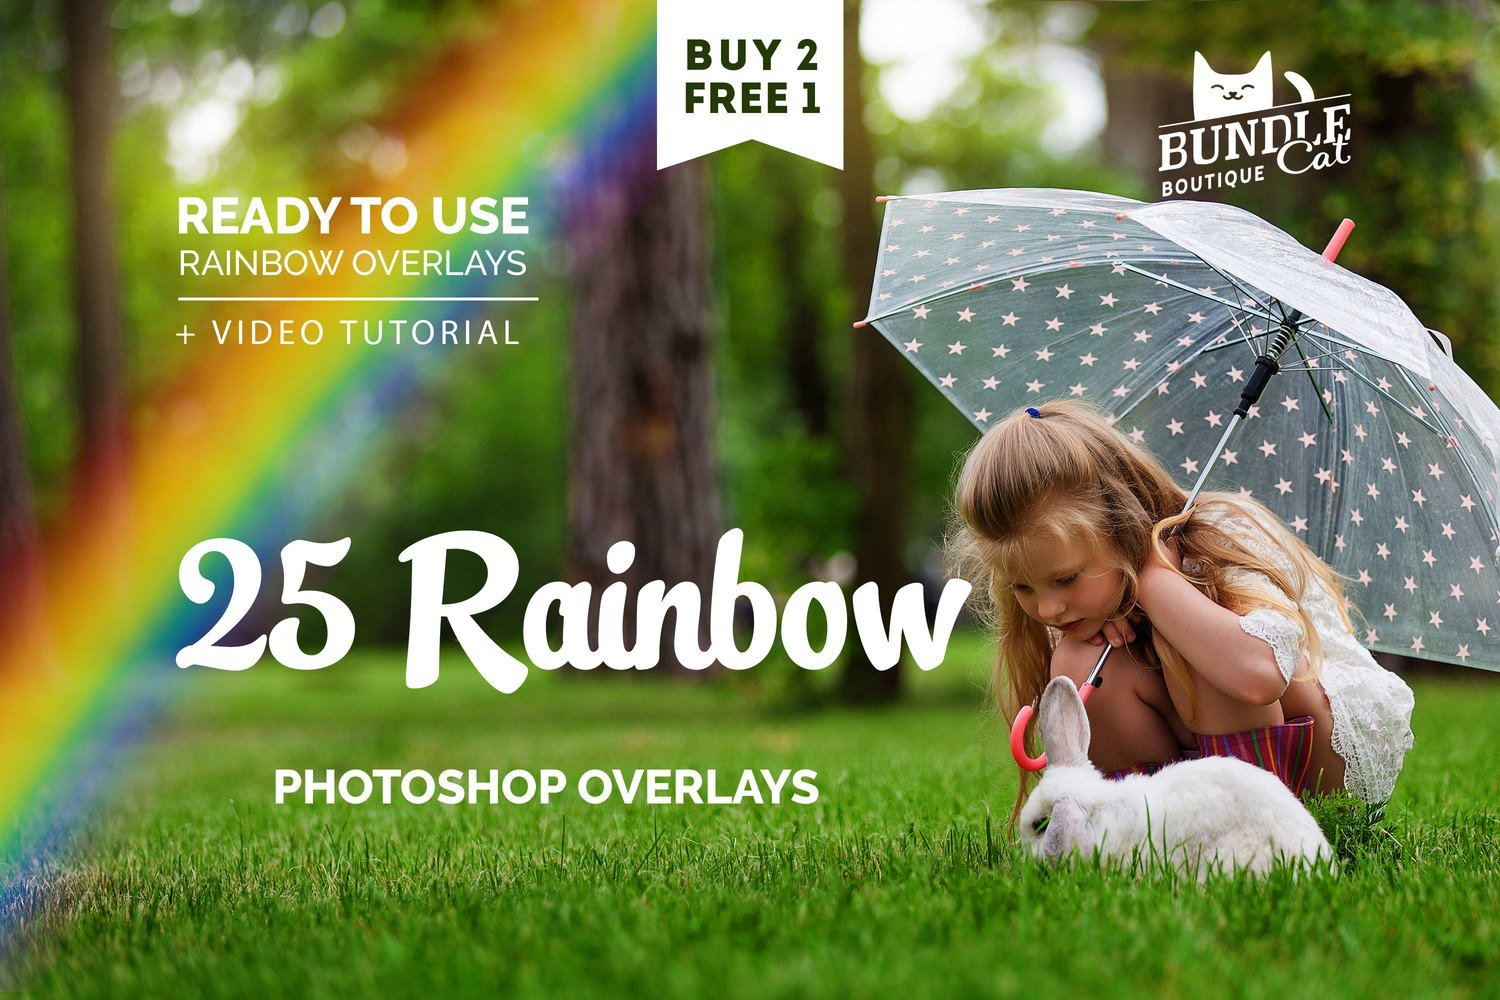 25 Rainbow Photo Overlays